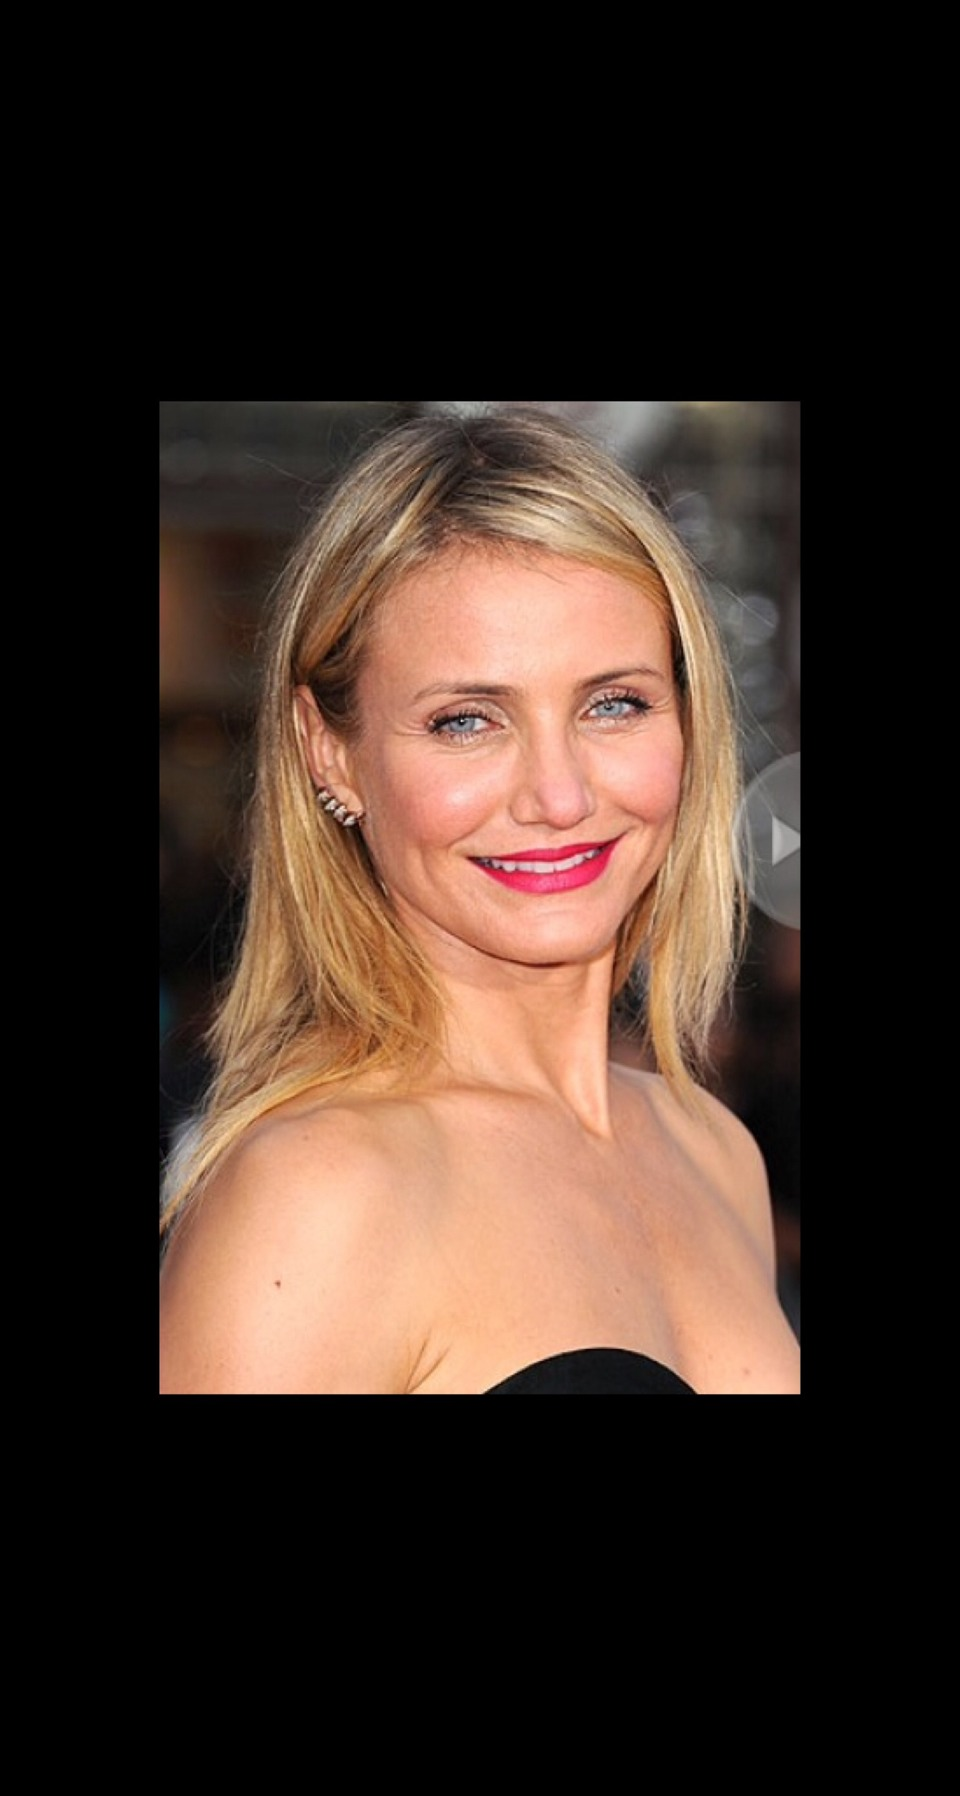 IMPERFECT PART LINES No comb, no problem. Gemma Arterton and Cameron Diaz give us permission to muss up our parts a bit, which is a subtle way of giving a polished do a bit of a beachy, laid-back vibe.